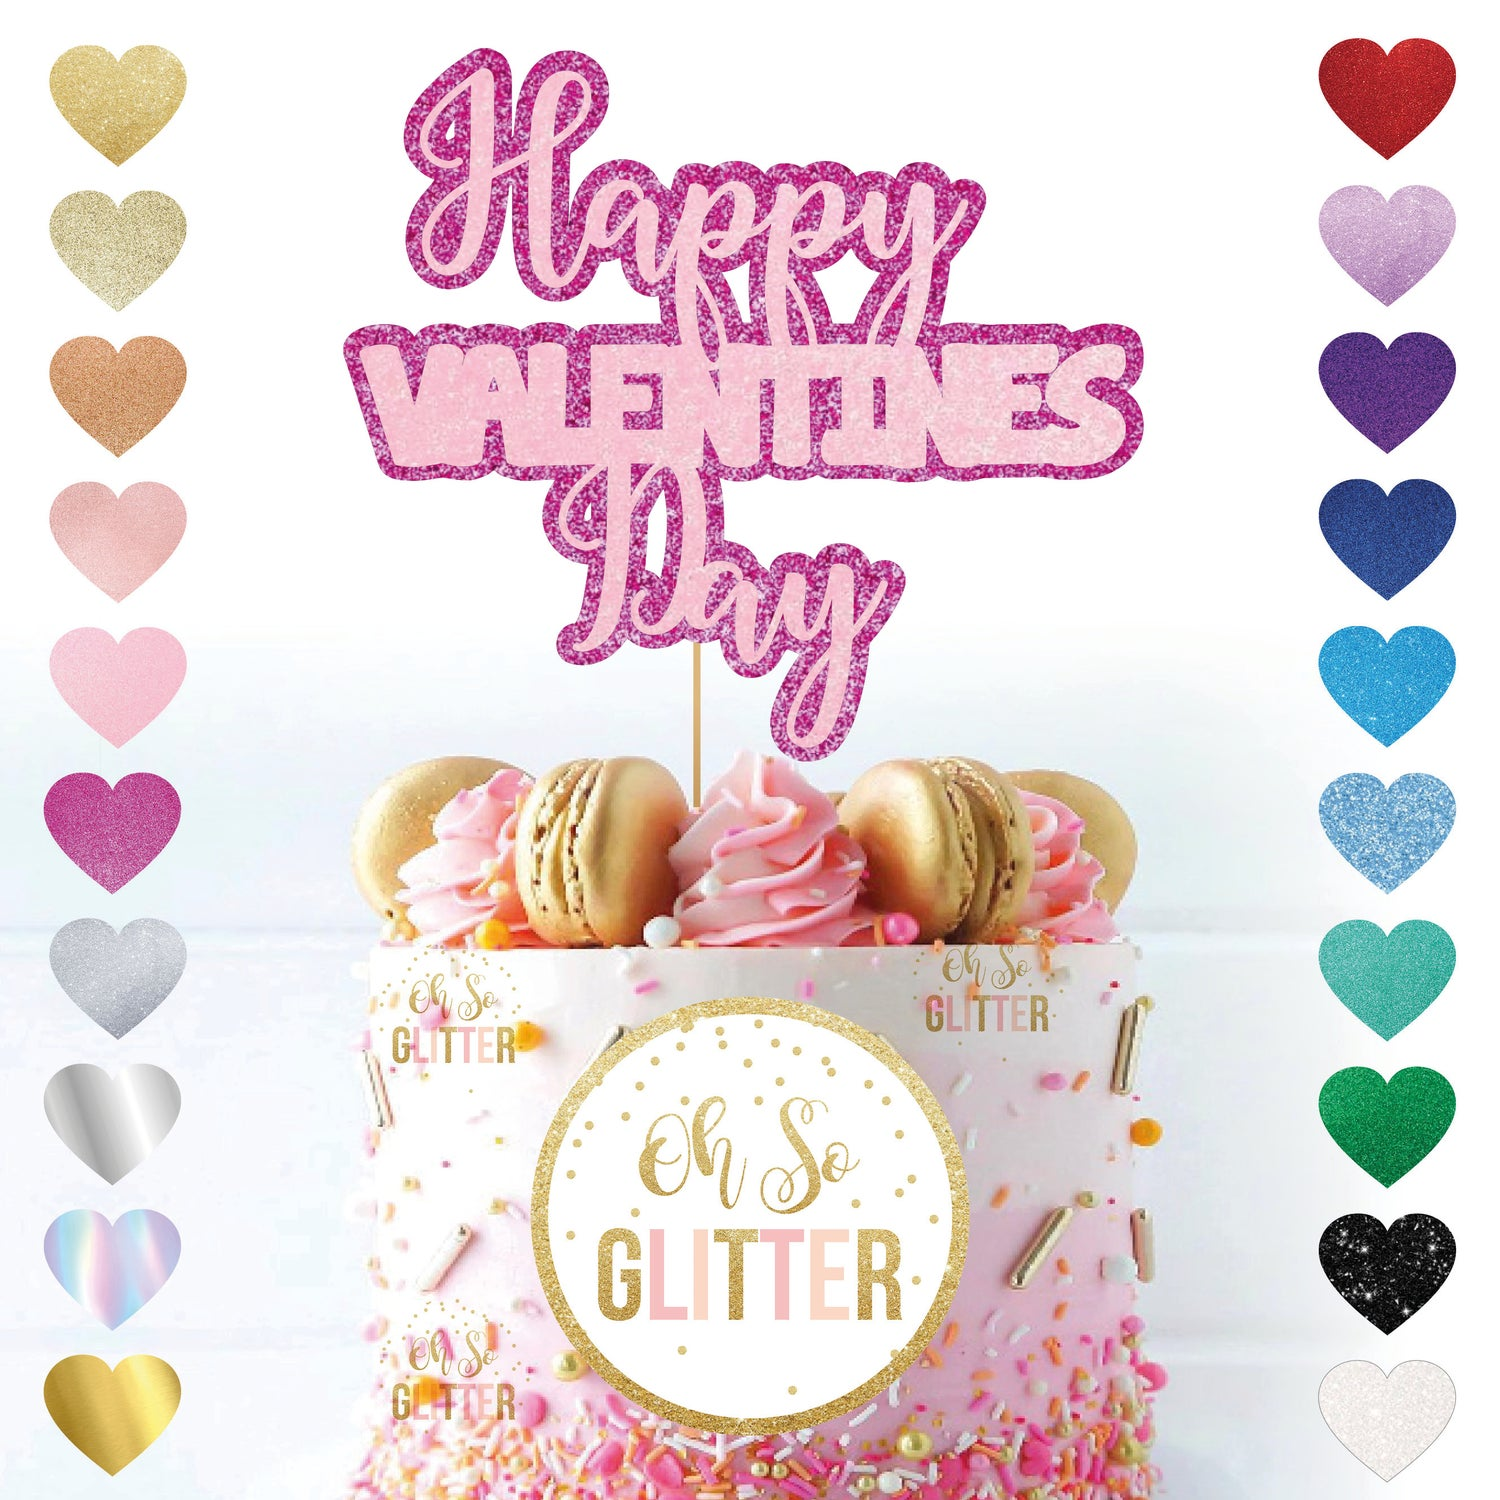 Image of Happy Valentines Day Double Glitter Cake Topper